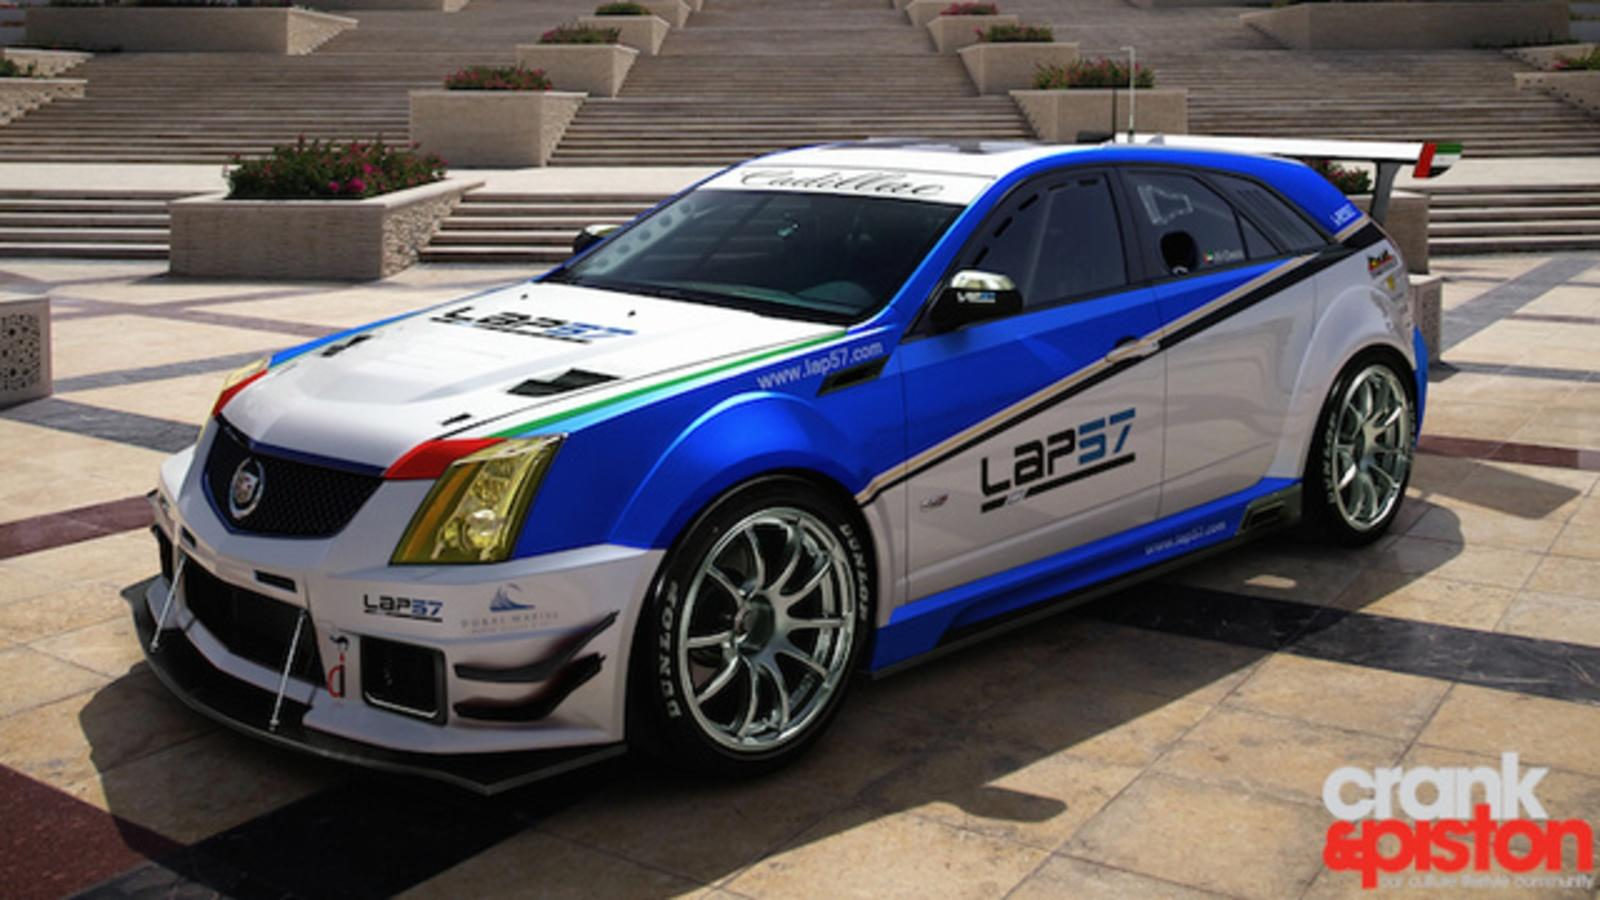 2011 Cadillac Cts V Wagon Race Car Review Top Speed